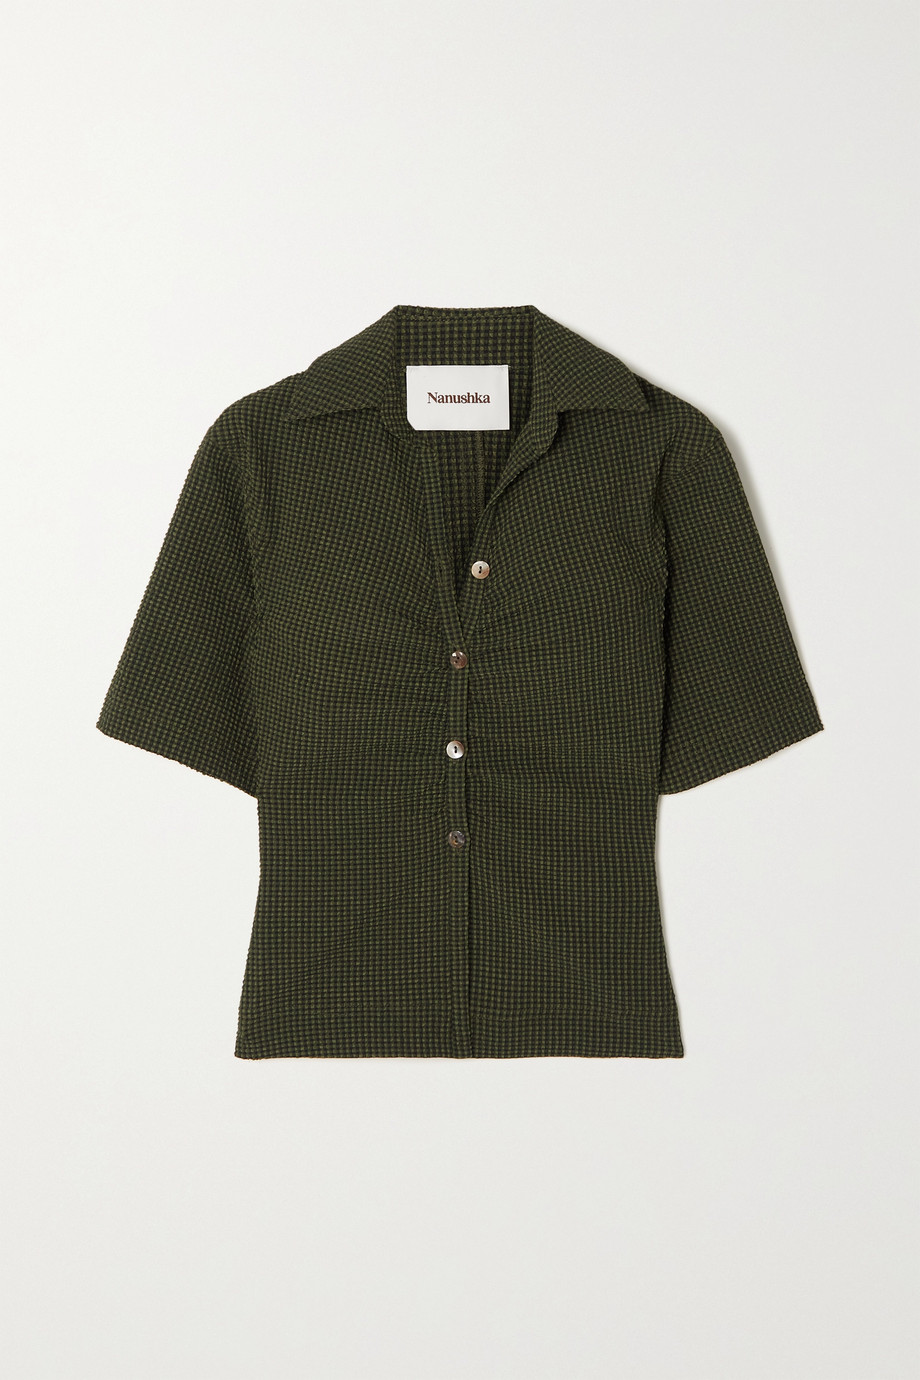 NANUSHKA + NET SUSTAIN Saff checked stretch-seersucker shirt